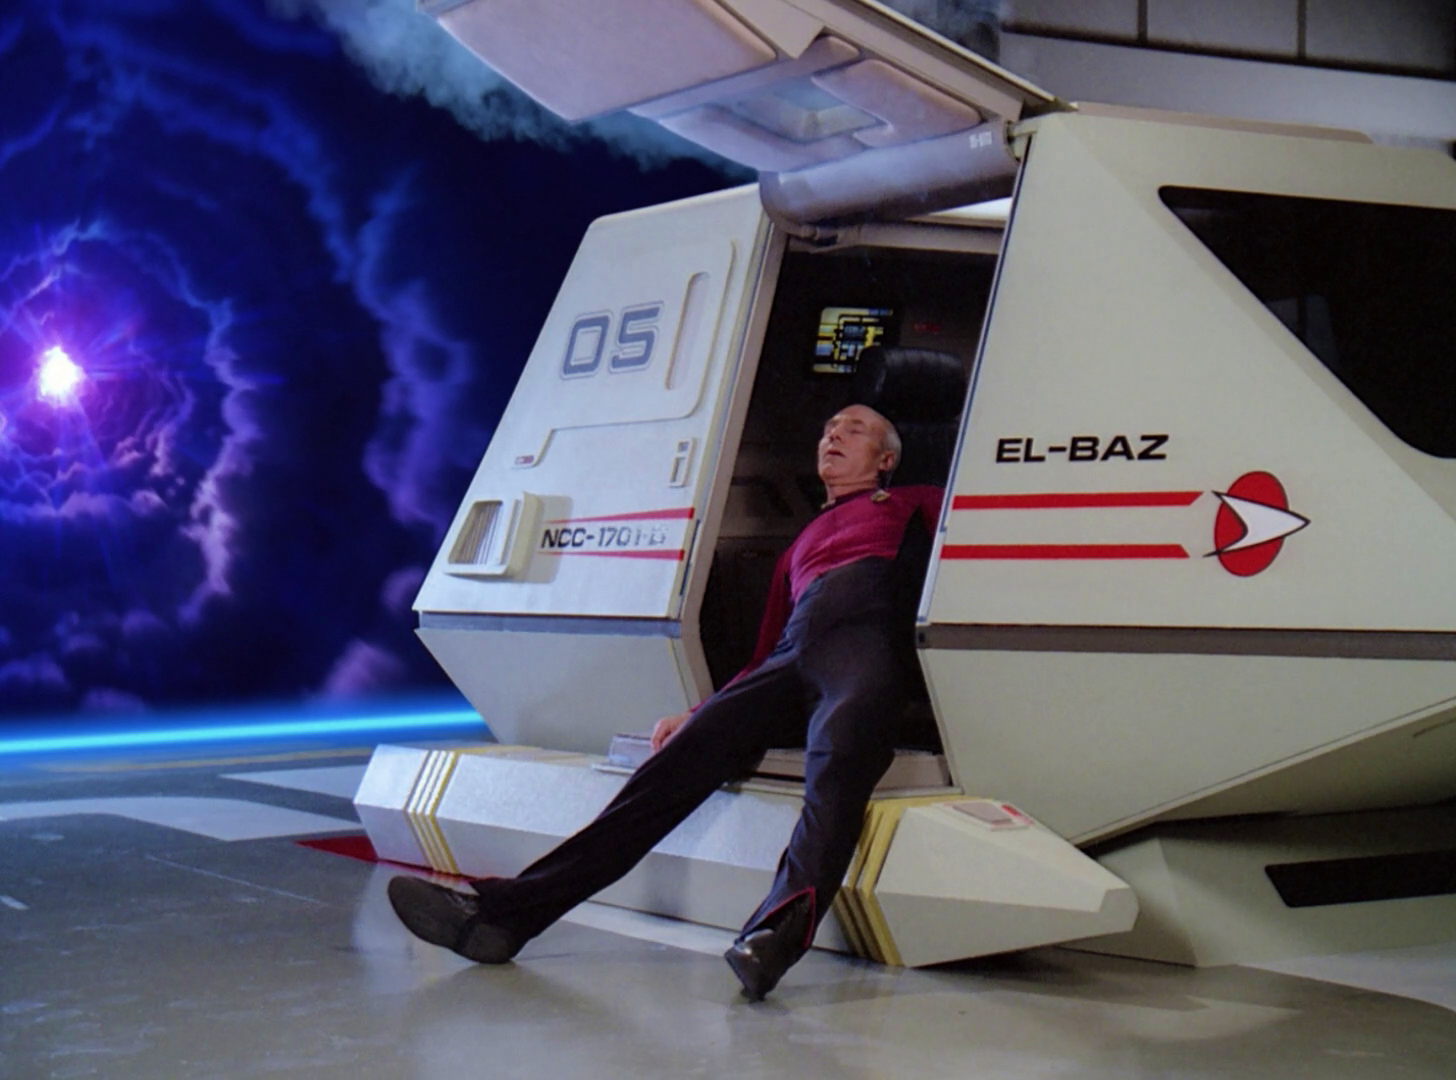 Picard stuns his future self and makes a different choice, breaking the time loop.